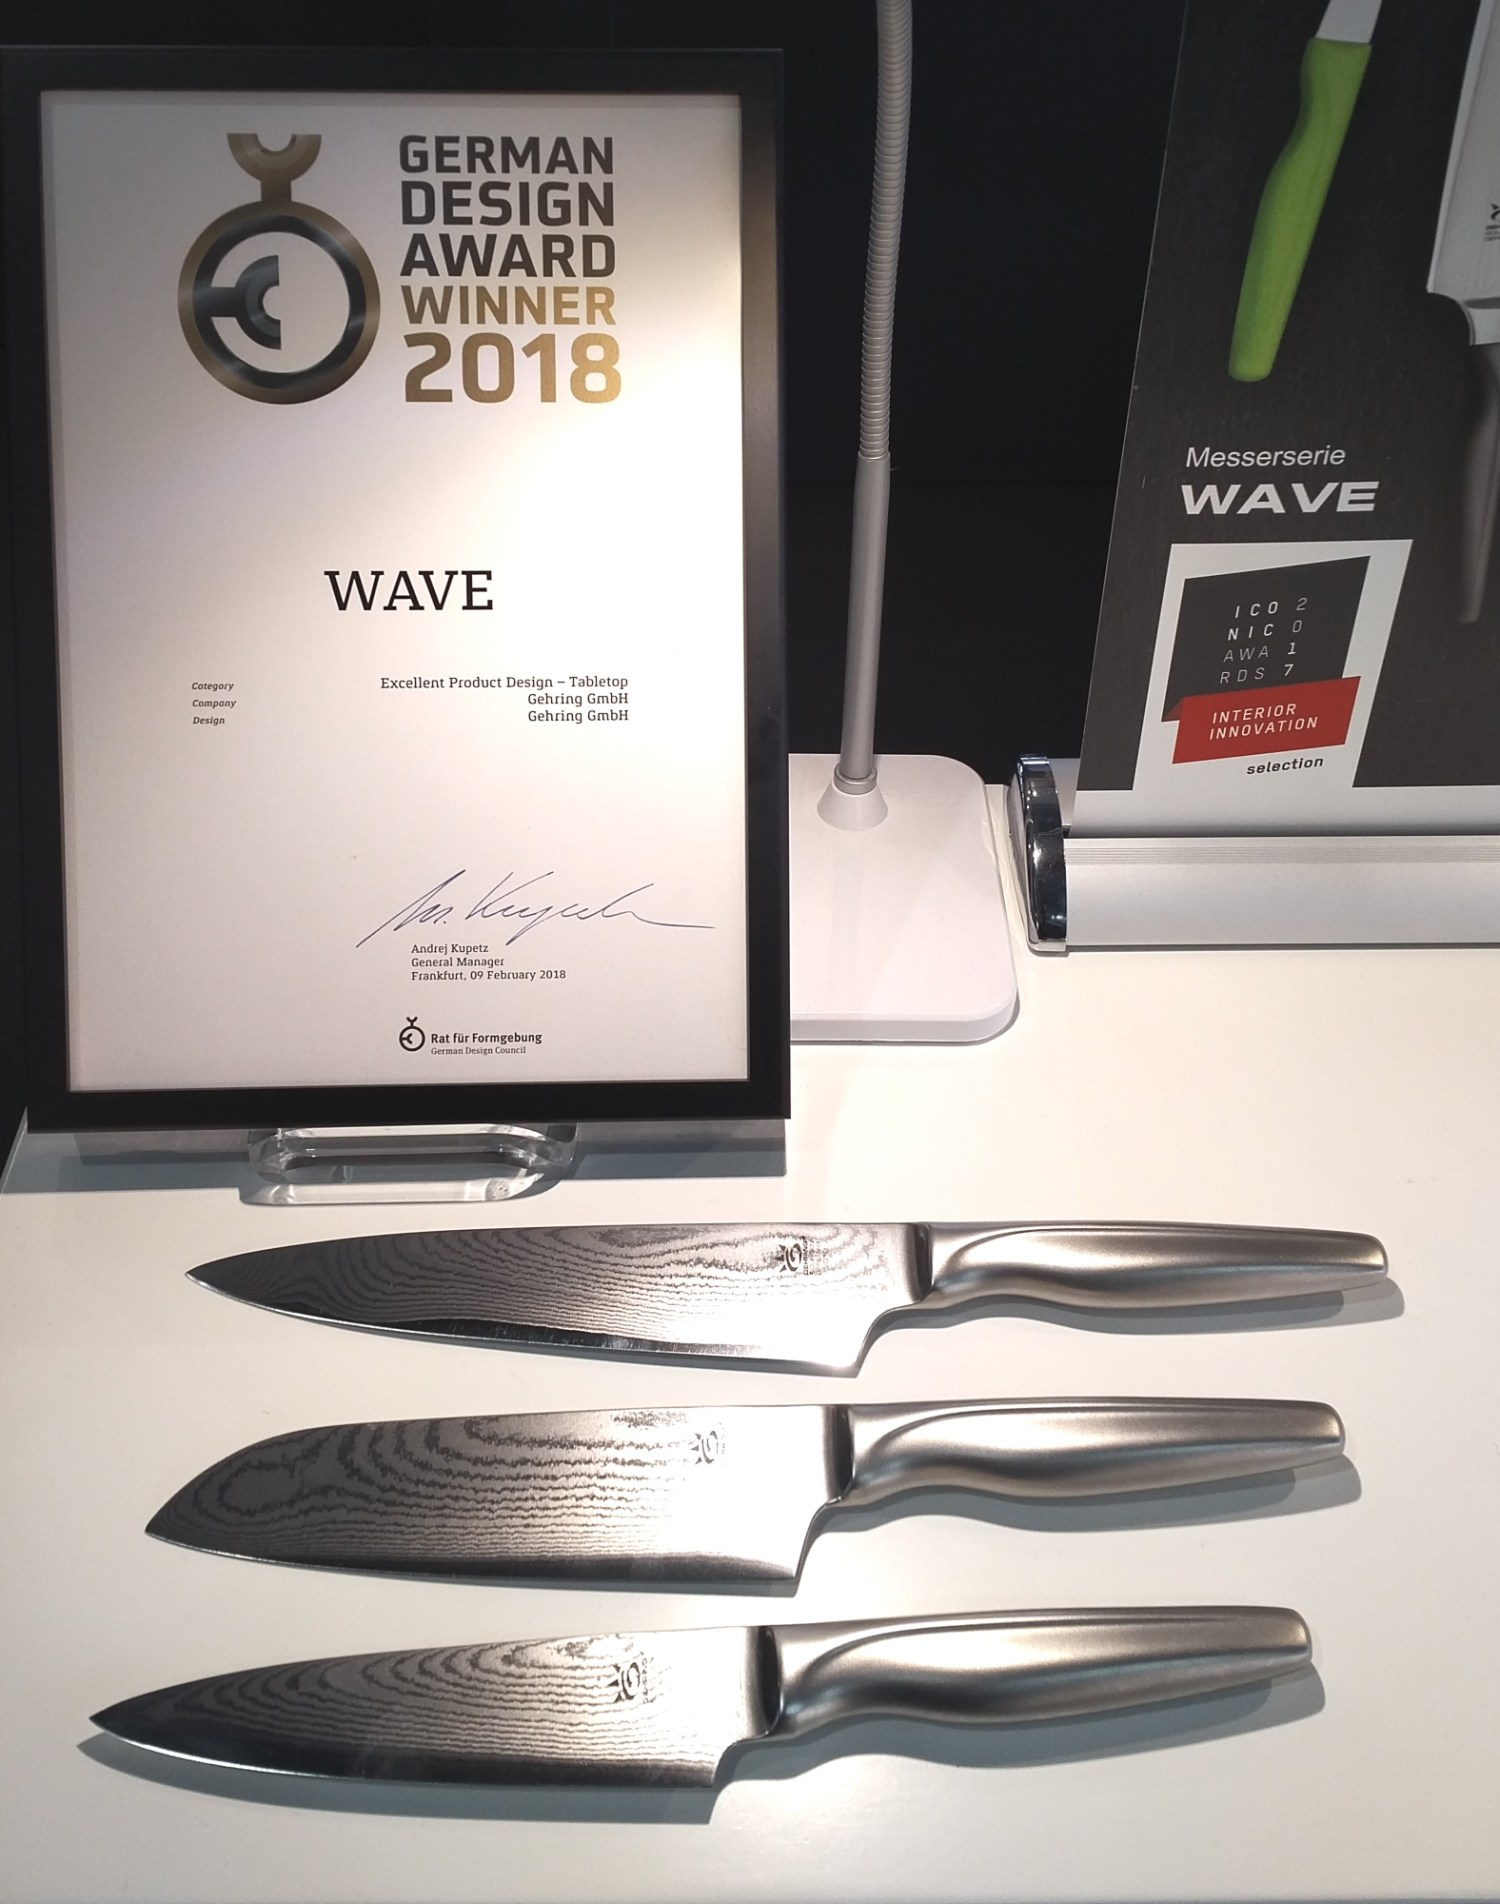 "Manufakturen-Blog: Gehrings Messerserie ""Wave"" gewann den German Design Award 2018 (Foto: Wigmar Bressel)"